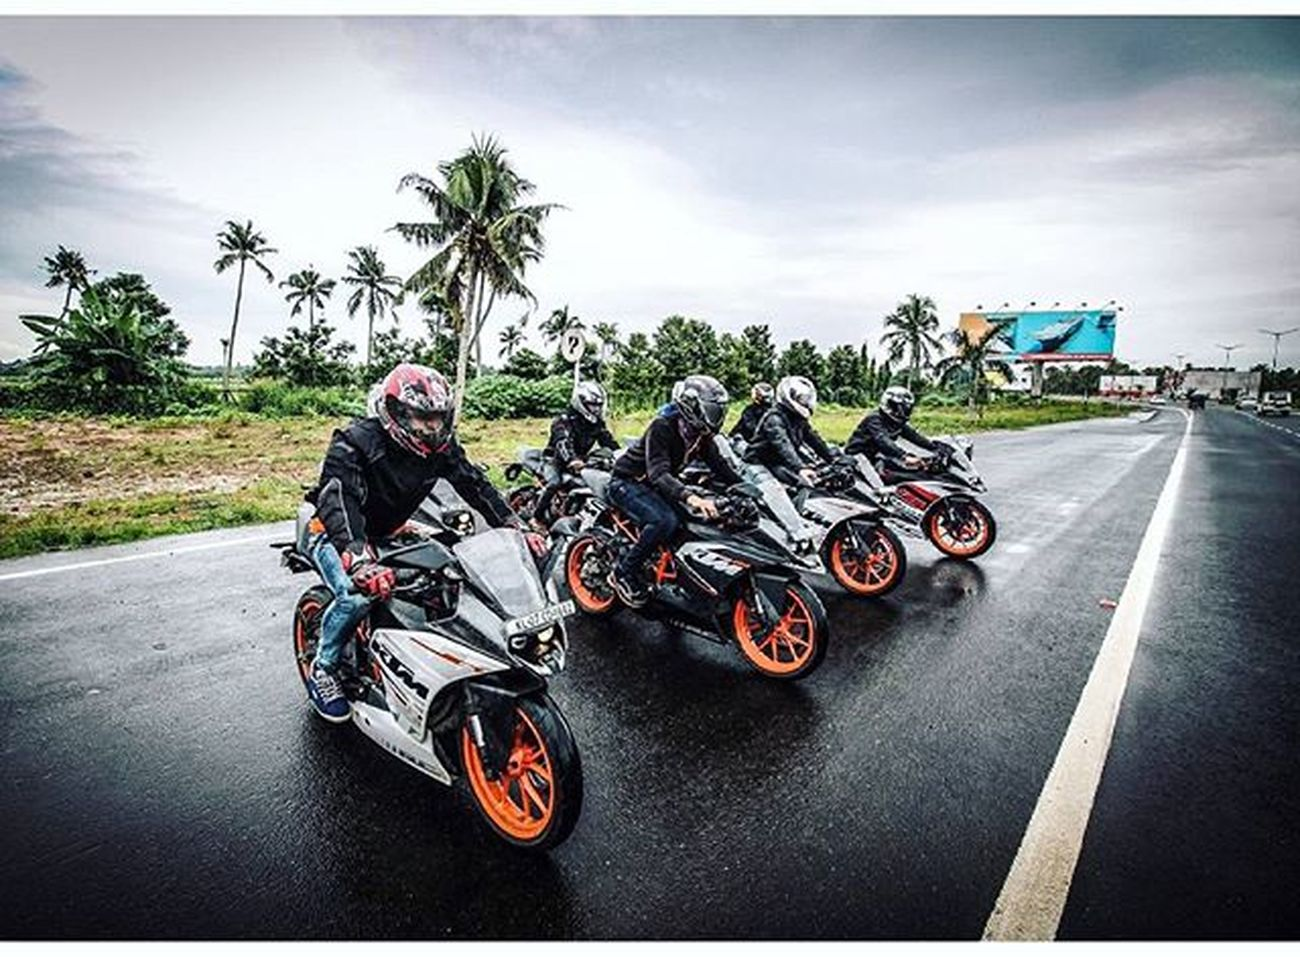 TogeTher We Ride 🏁😍😉😘 RcReiTers😍😘😎 Ktmworld Ktmclub KTMRacing Ktm Baby Bigboystoy Ktmrc390 Ktmrc200 DUKE  Street Race Travel Bikeswithoutlimits Bikestagram SportBikeLife Sportbikeaddicts 😍😙😘😉😊